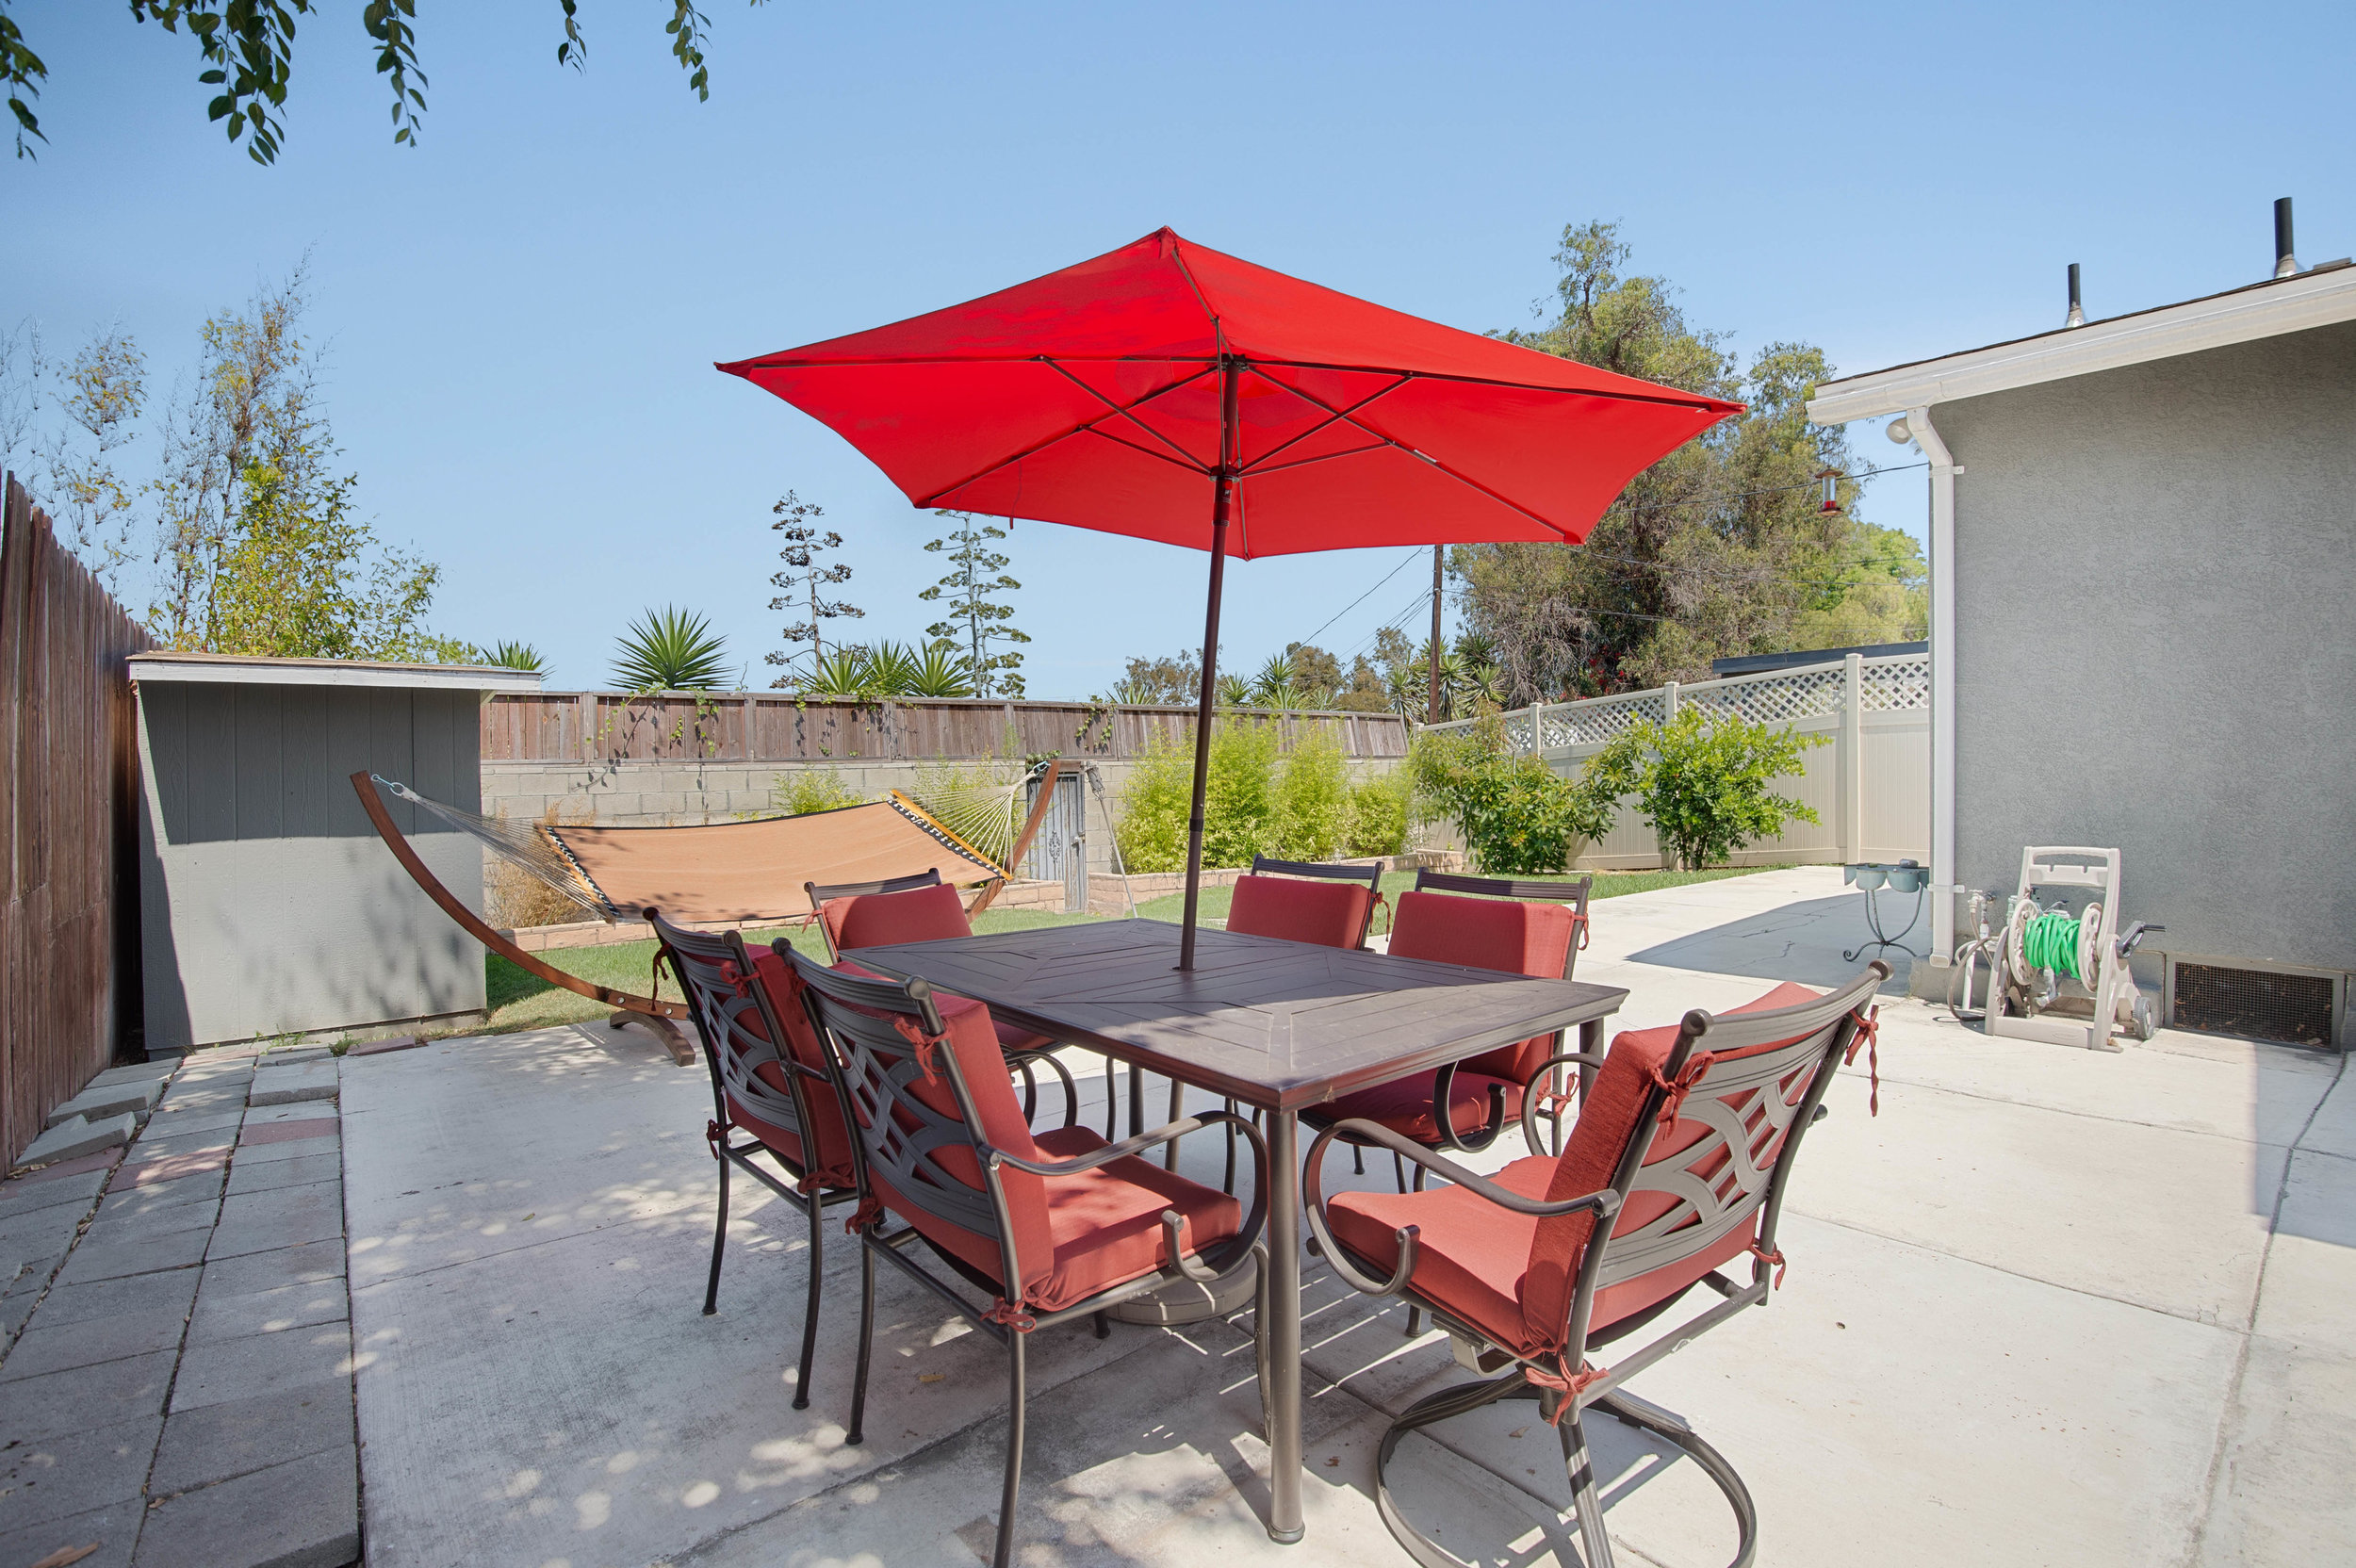 007 7612 Midfield Avenue Westchester Los Angeles For Sale Lease The Malibu Life Team Luxury Real Estate.jpg